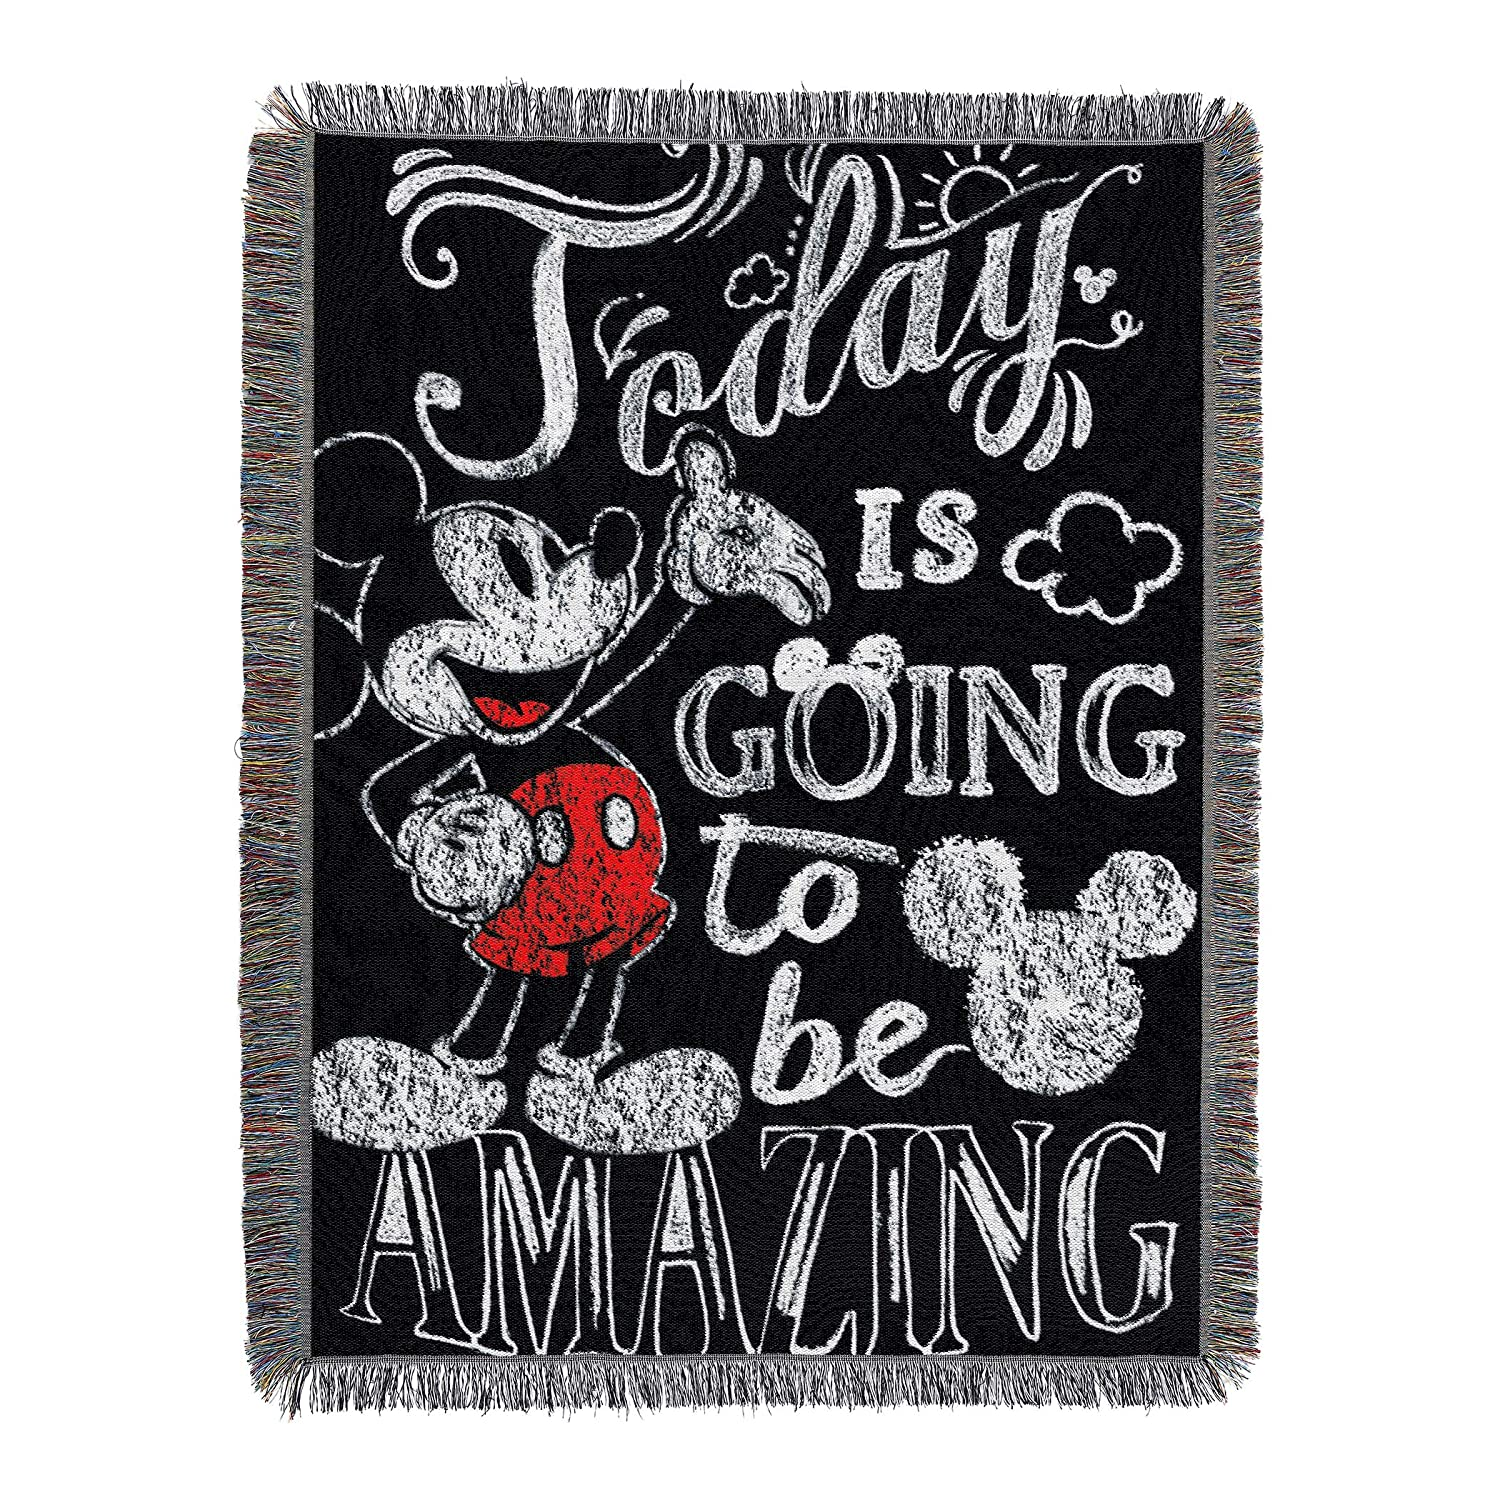 "Disney's Mickey Mouse, ""Amazing Day"" Woven Tapestry Throw Blanket, 48"" x 60"", Multi Color"